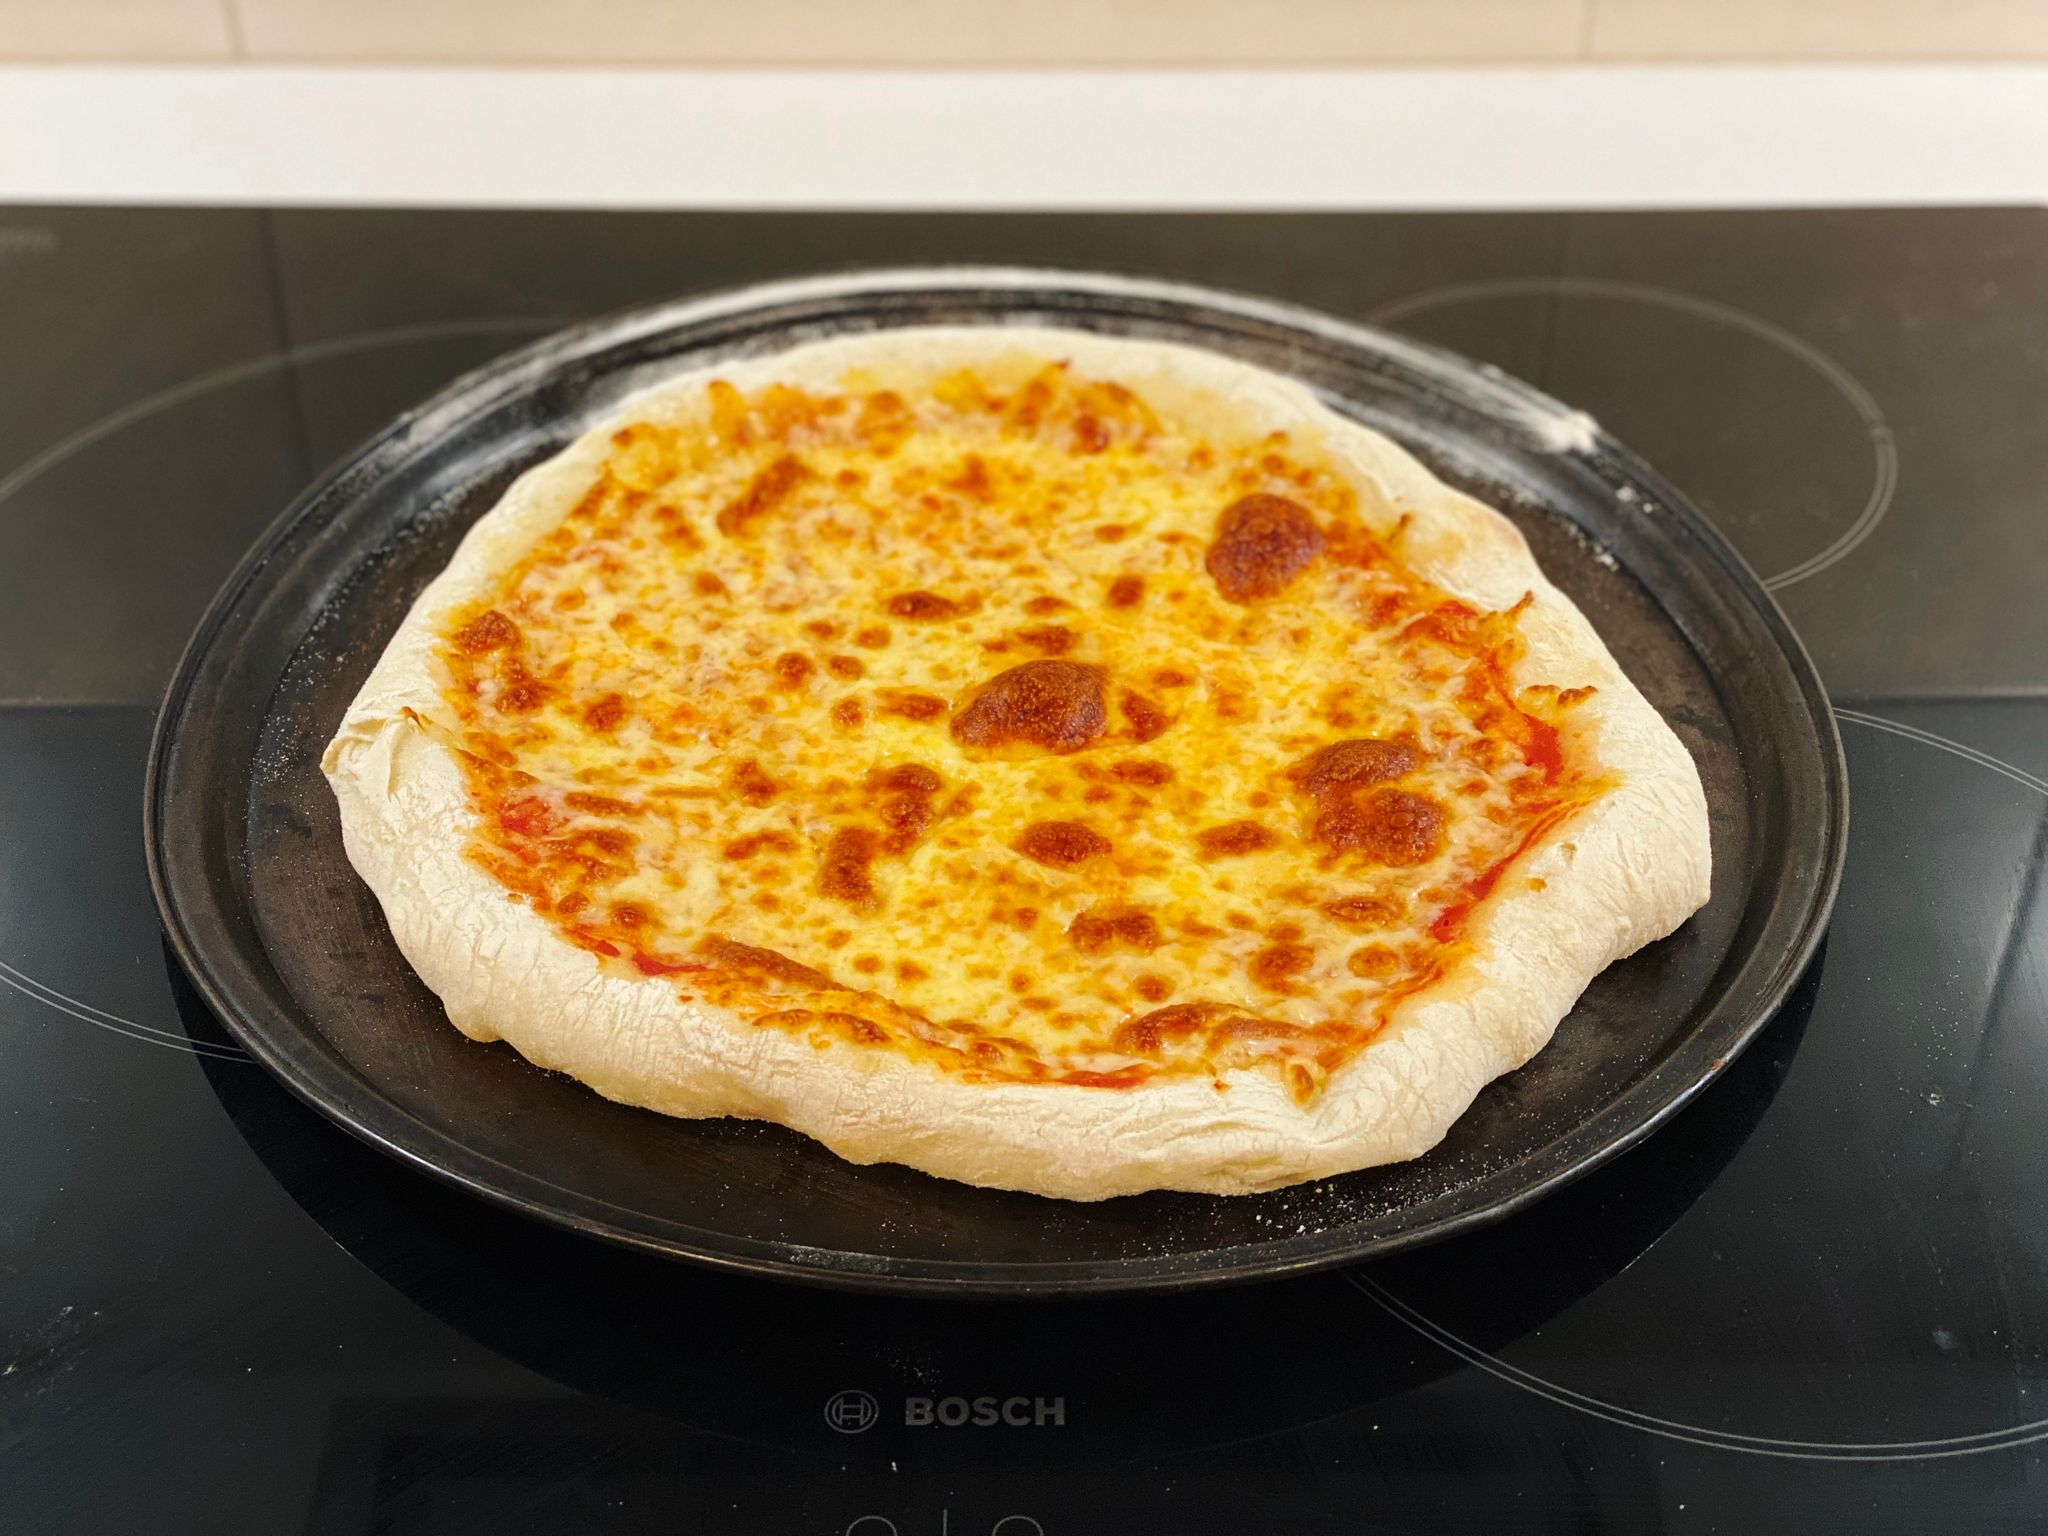 A photo of a homemade pizza with puffy crusts and gloriously cooked cheese sitting on a round pizza tray.